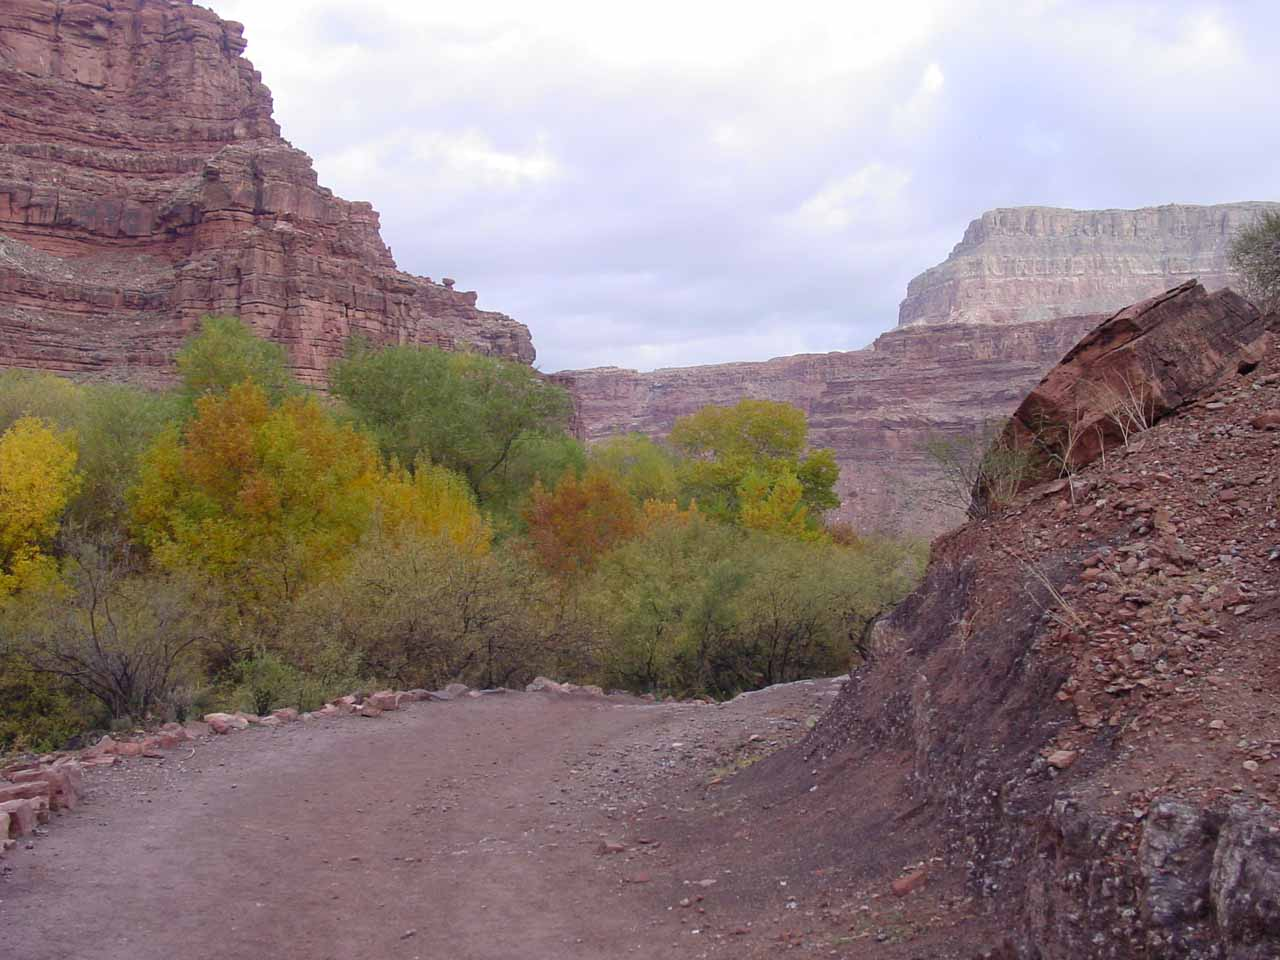 Starting the hike out of Supai and back towards the waterfalls